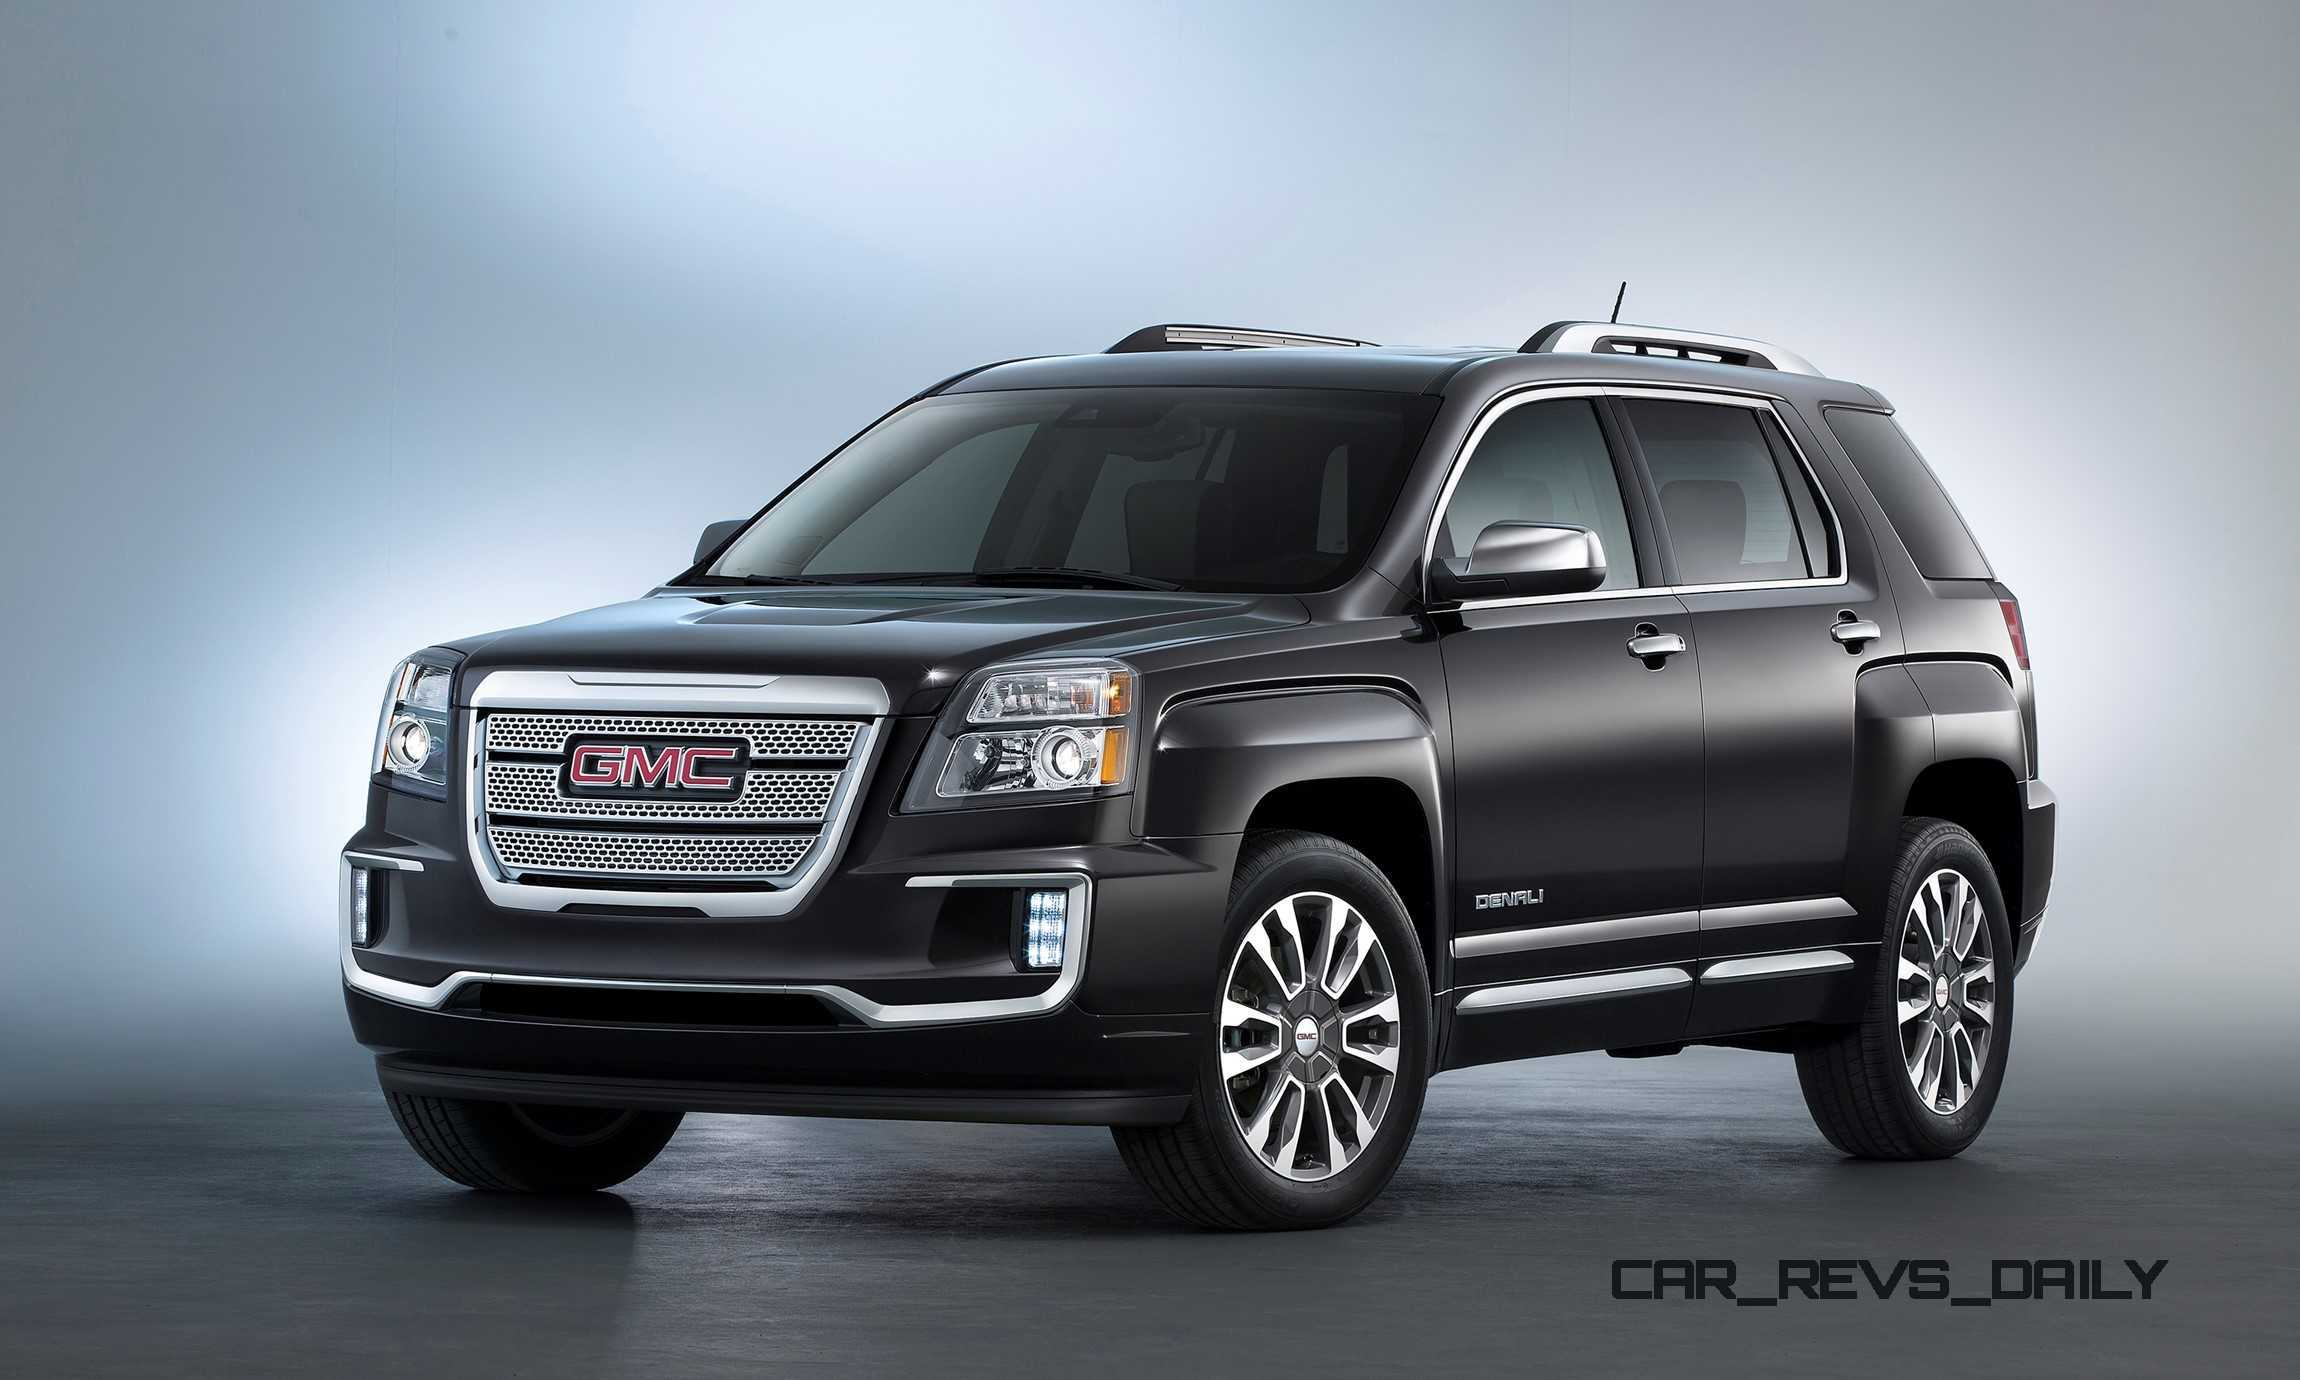 2016 gmc terrain. Black Bedroom Furniture Sets. Home Design Ideas